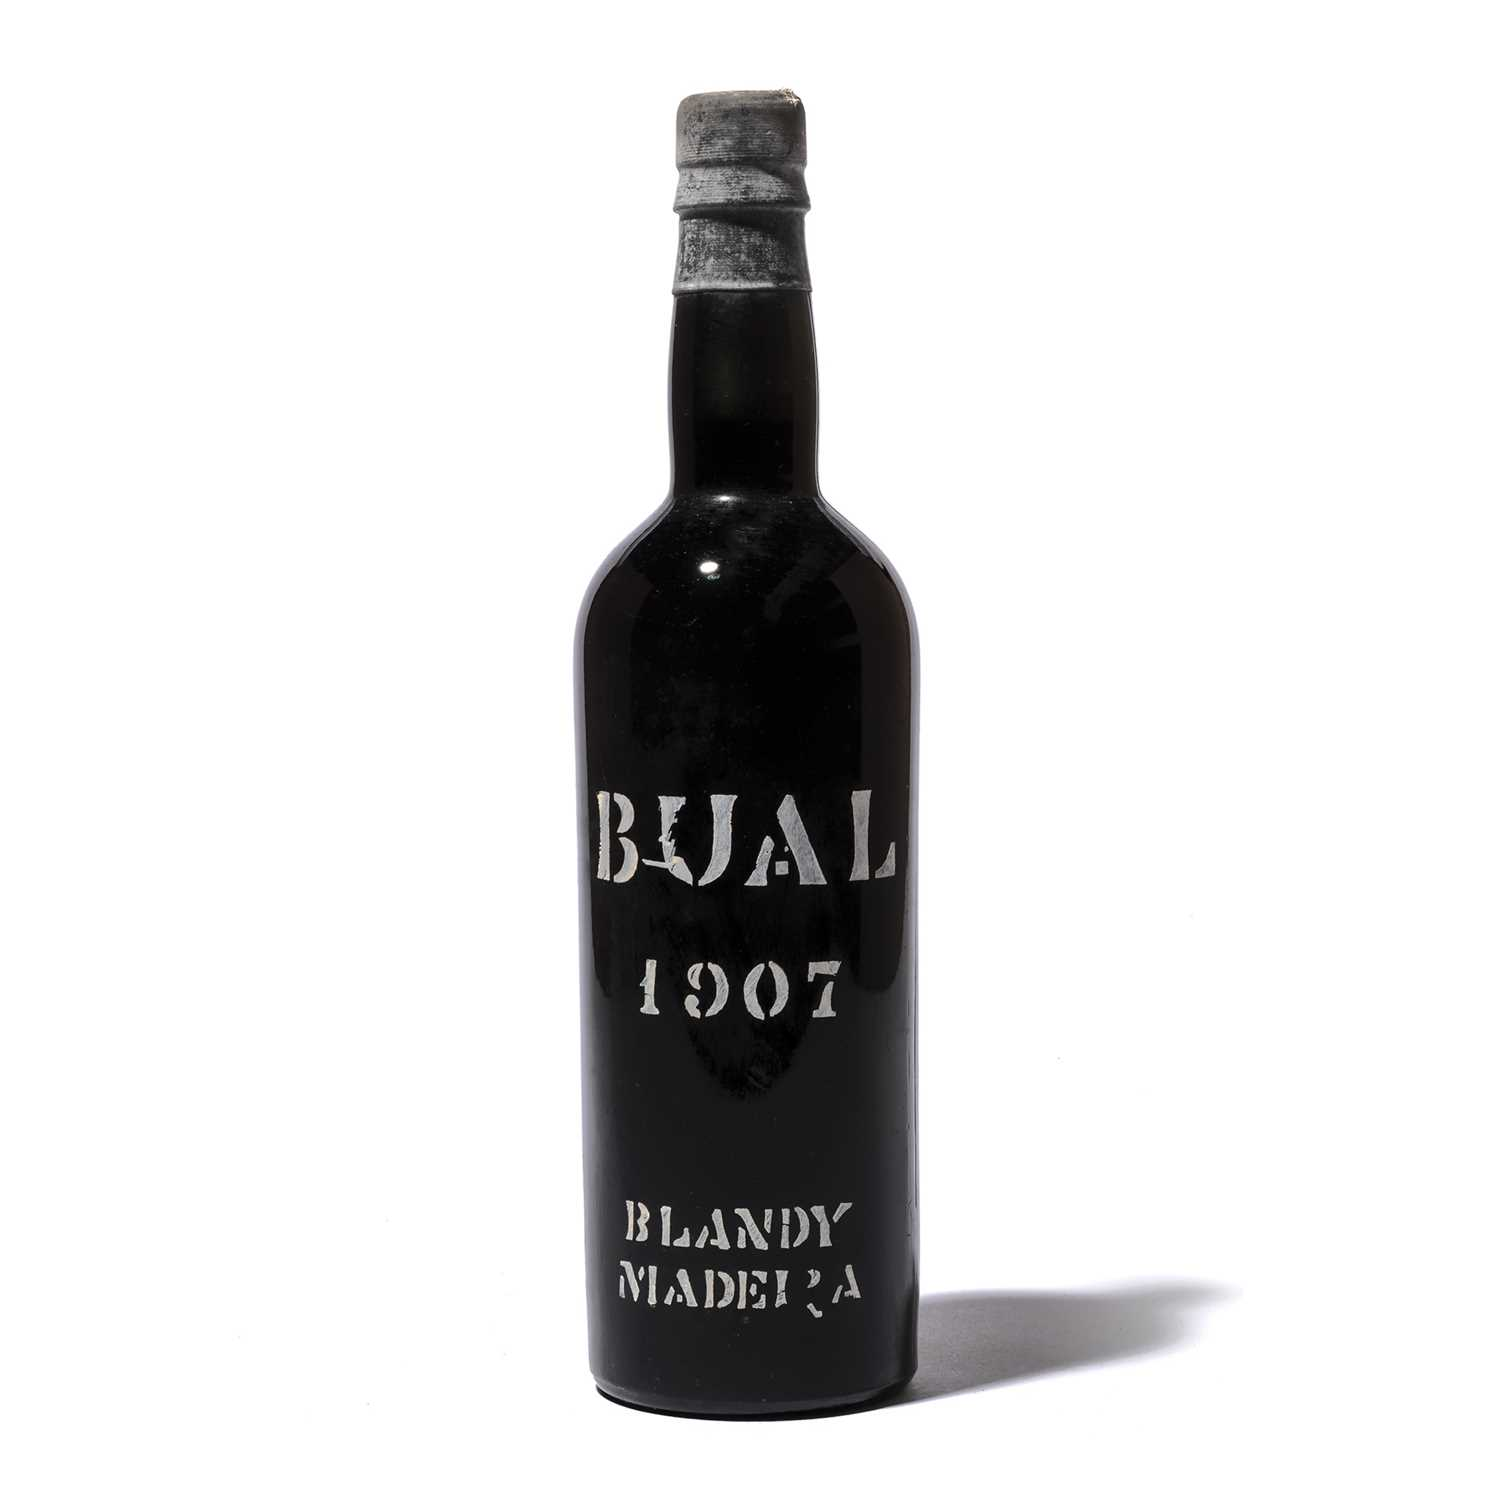 Lot 25-1 bottle 1907 Bual